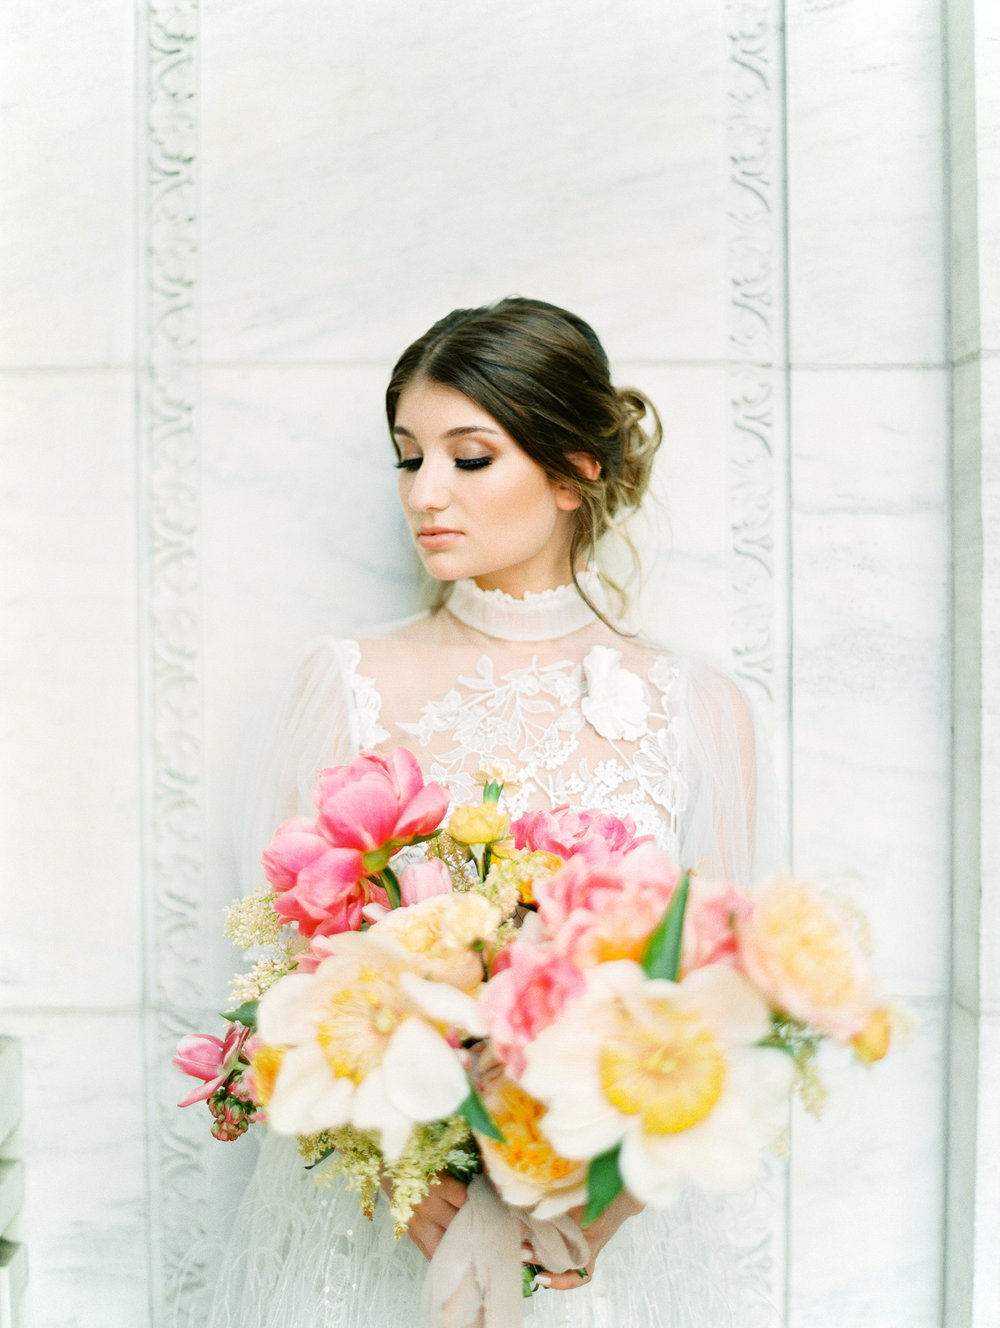 nyc-manhattan-bridal-editorial-newyork-public-library-jessica-bellinger-photography -33.jpg